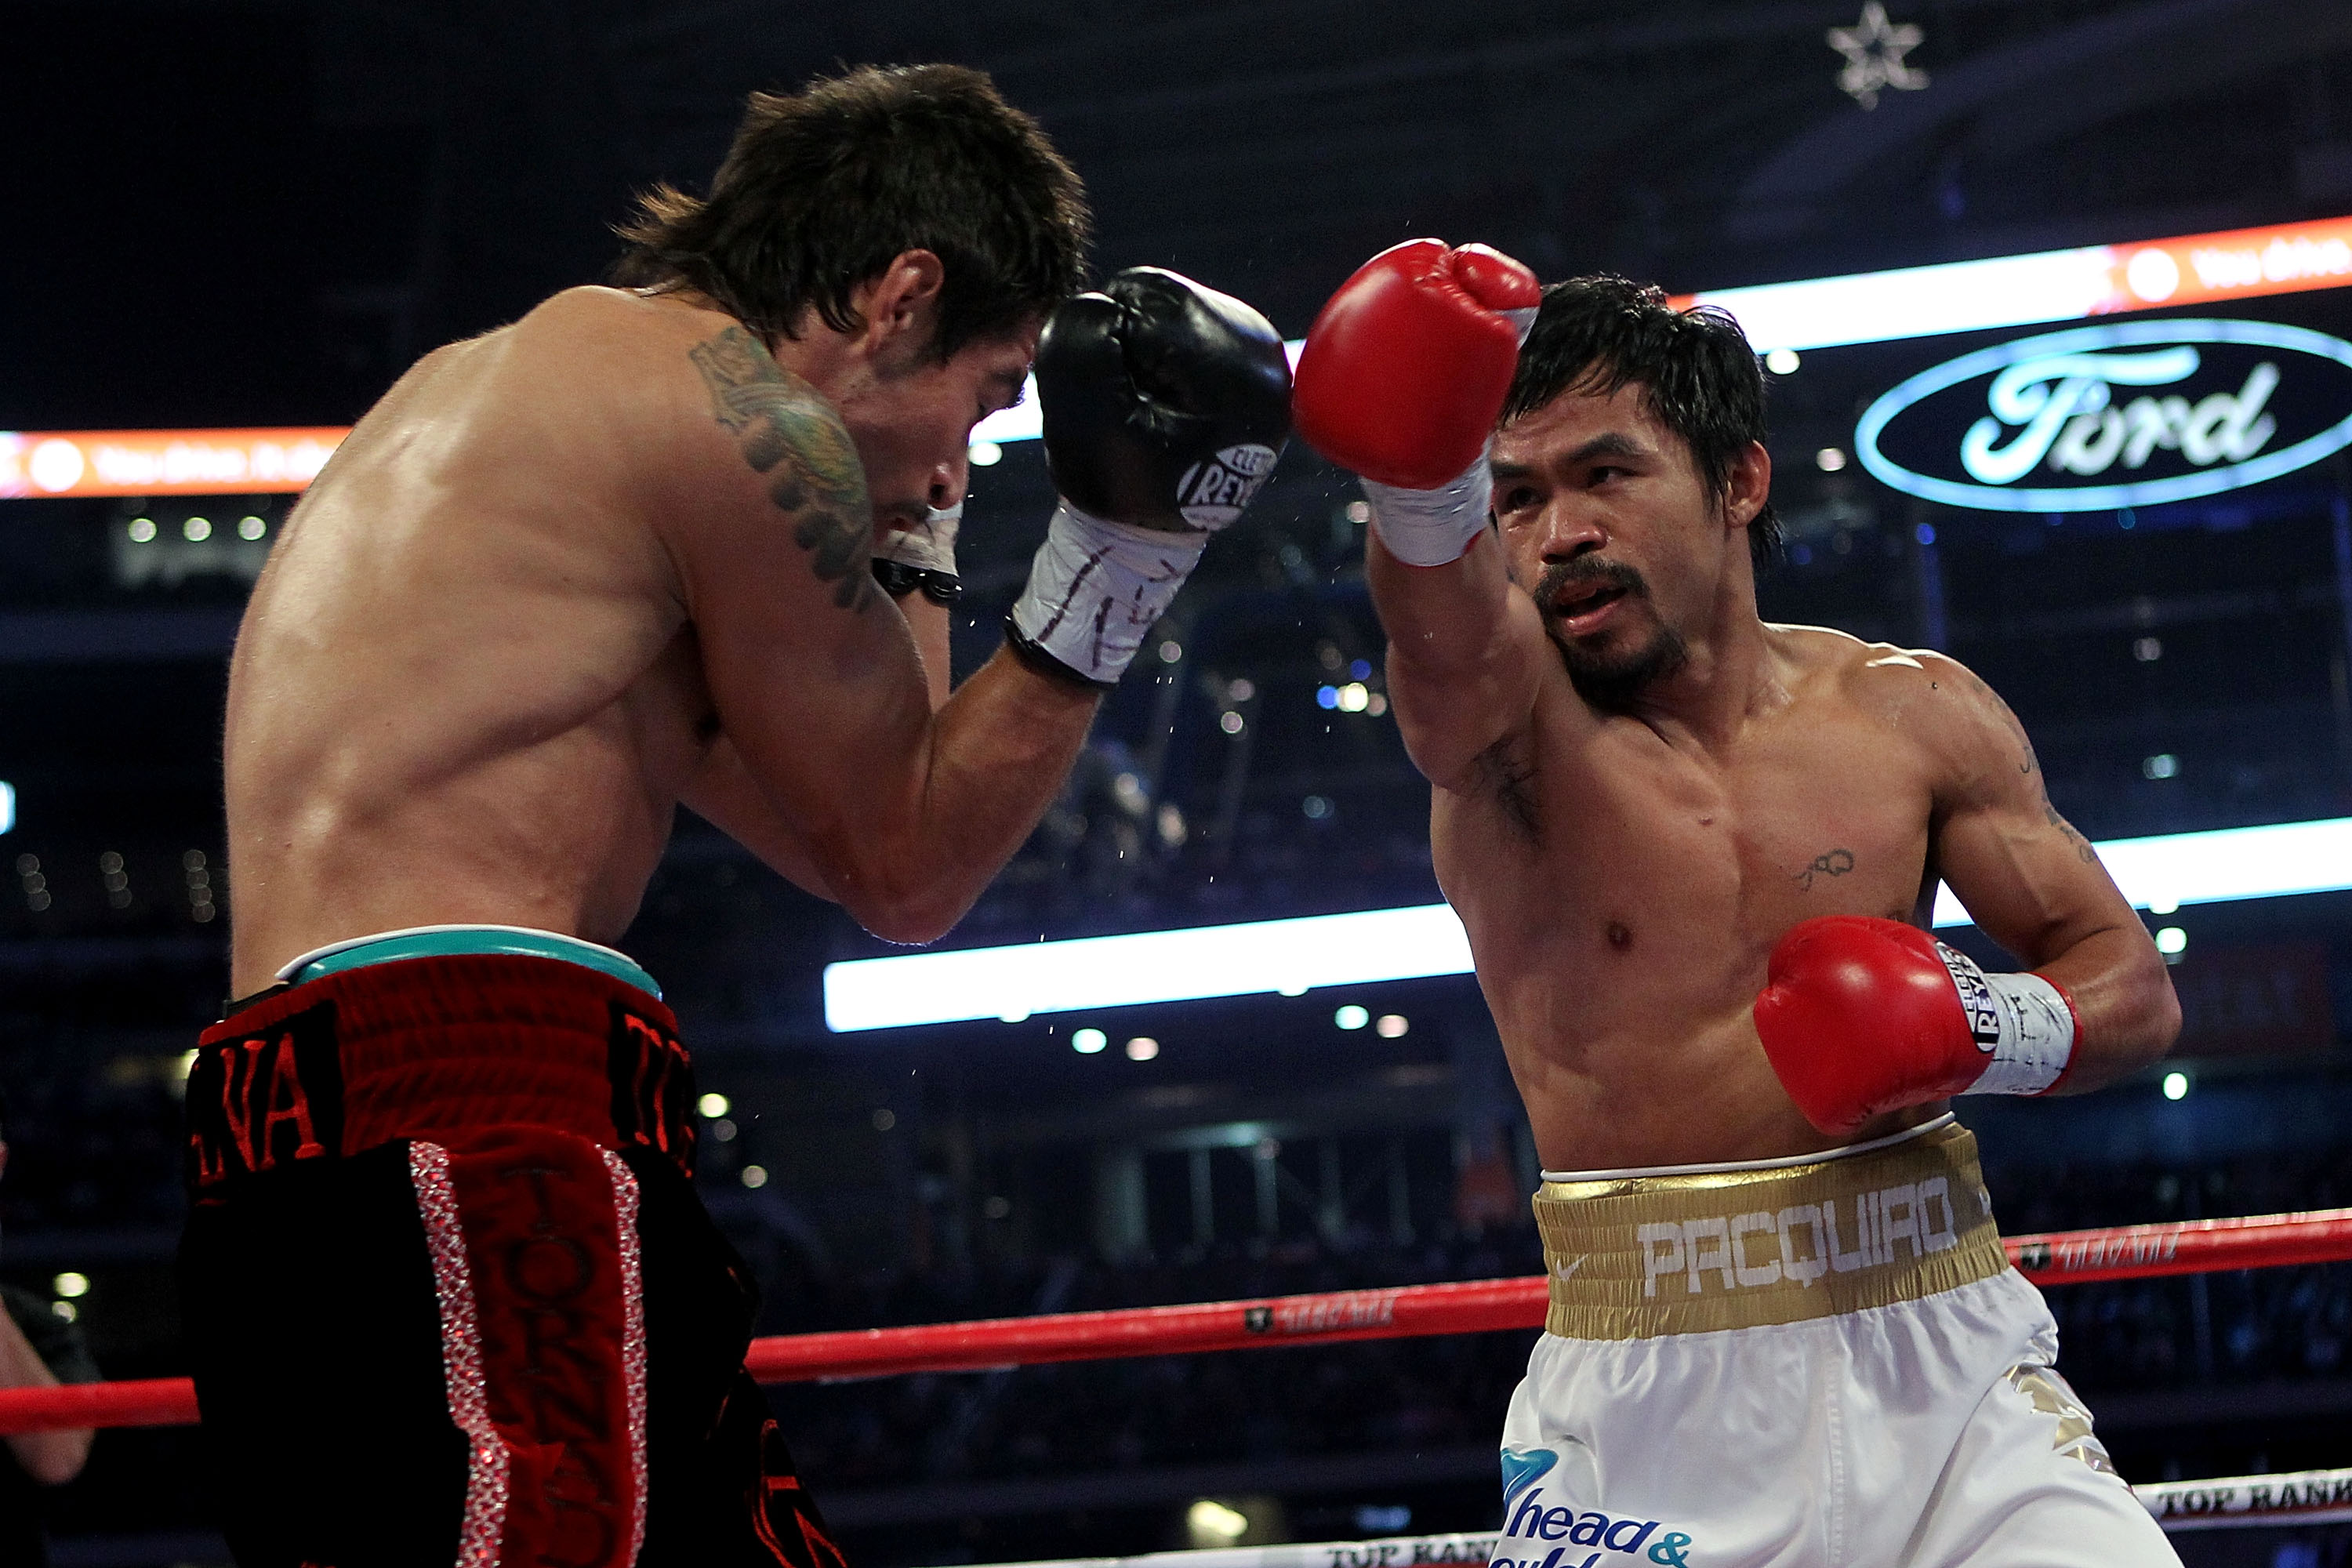 ARLINGTON, TX - NOVEMBER 13:  Manny Pacquiao (white trunks) of the Philippines throws a punch against Antonio Margarito (black trunks) of Mexico during their WBC World Super Welterweight Title bout at Cowboys Stadium on November 13, 2010 in Arlington, Tex